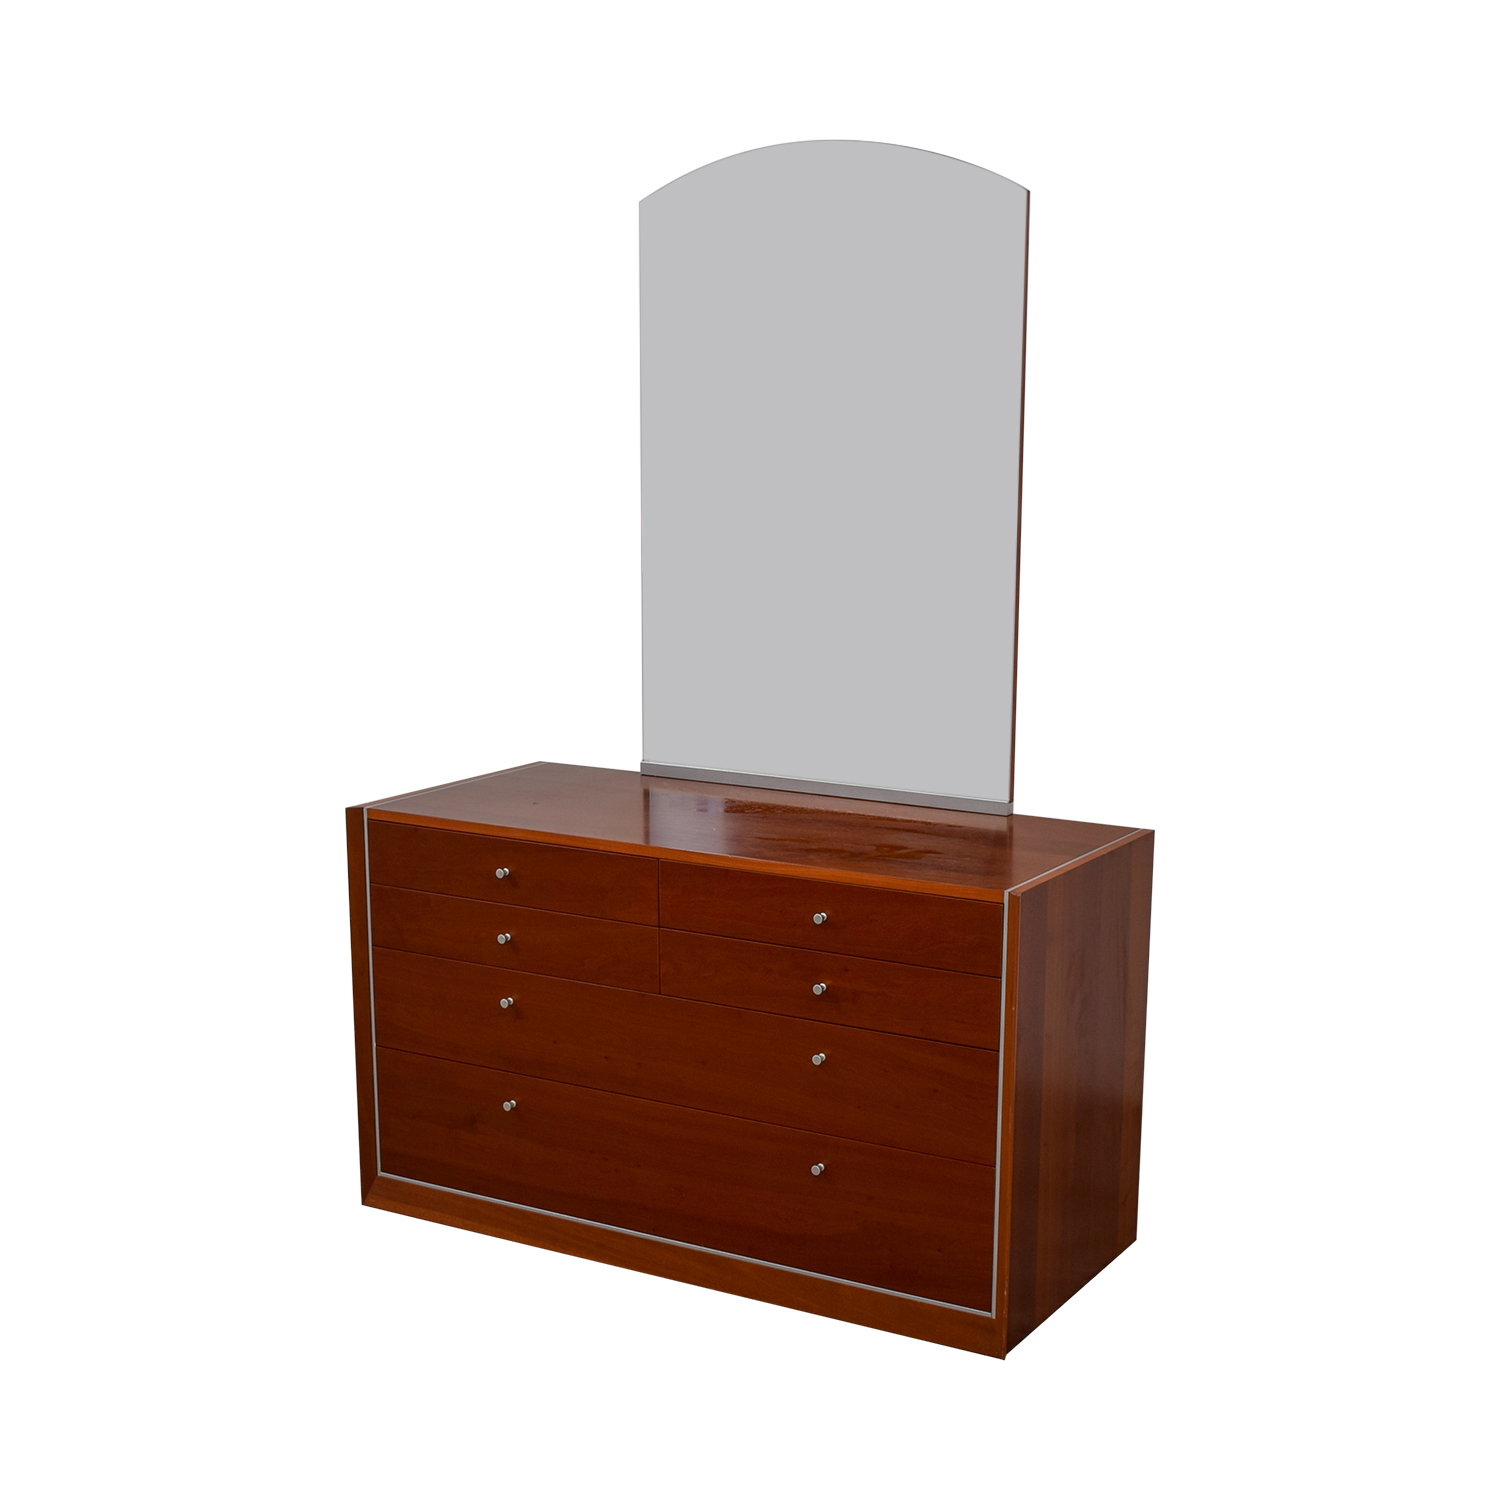 Modern Silver Trimmed Dresser with Mirror dimensions